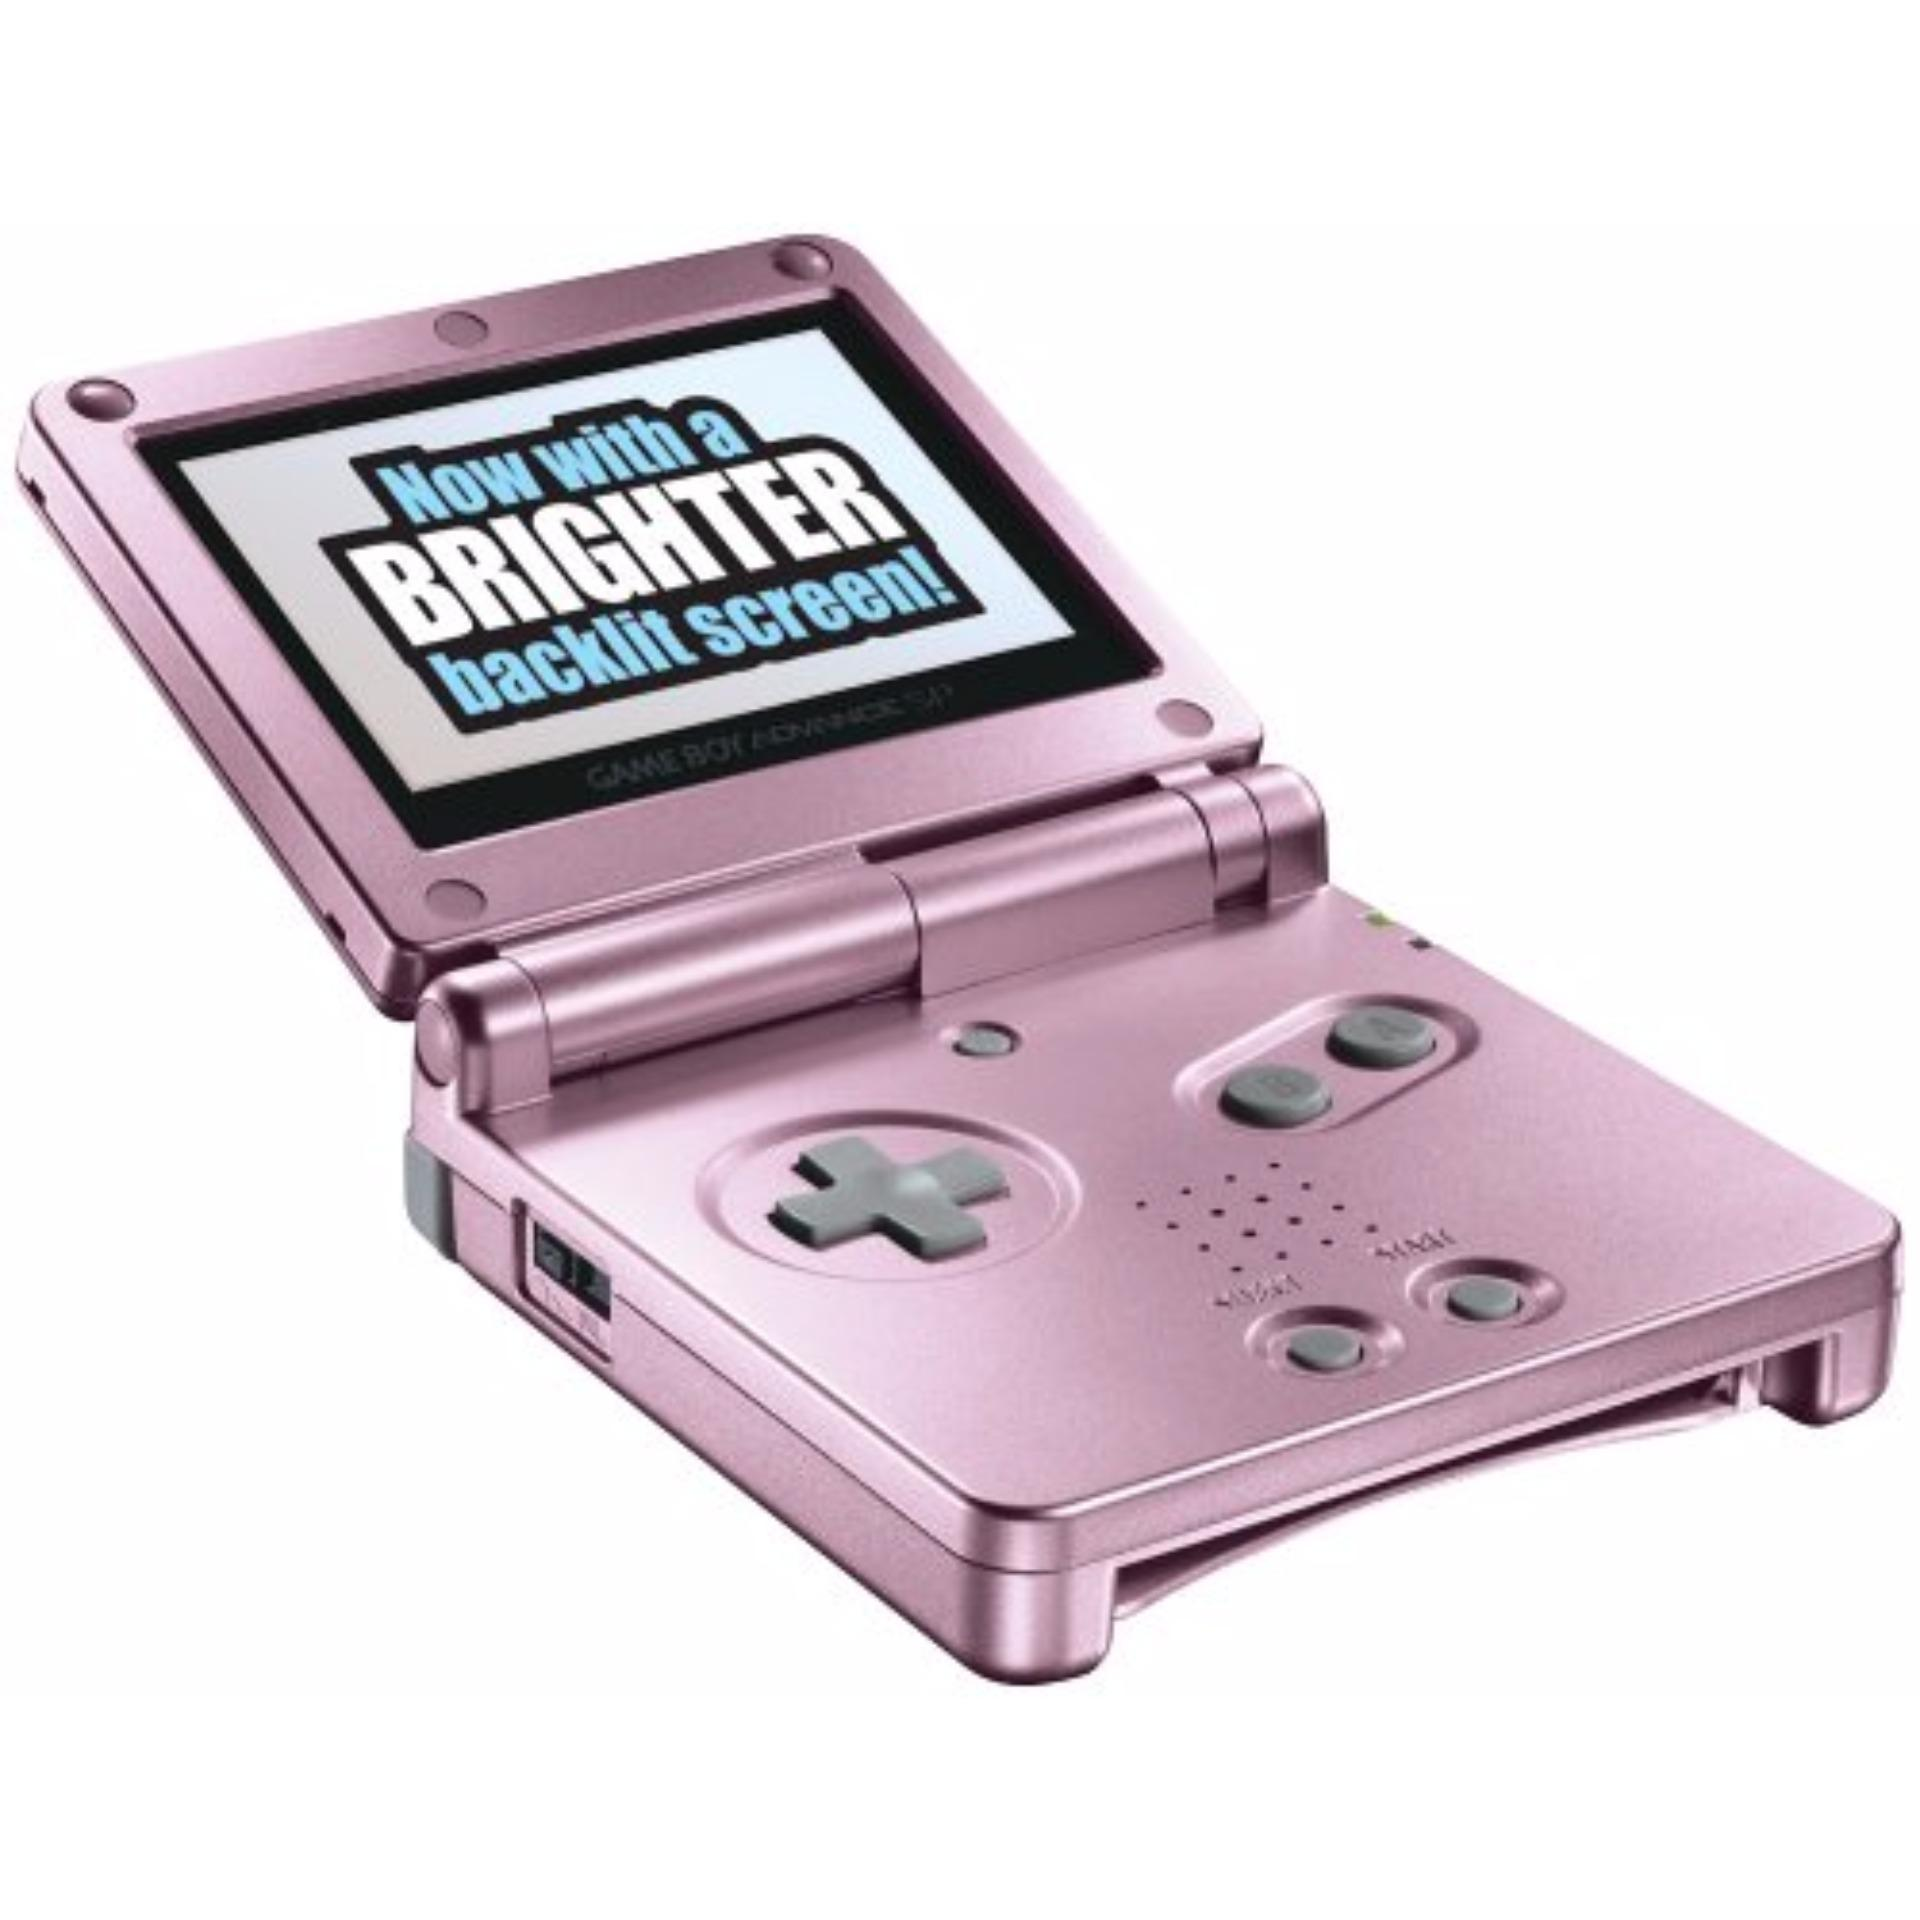 Nintendo Gameboy Advance SP with Brighter Backlit AGS – 101 Screen Pink (Brand New)